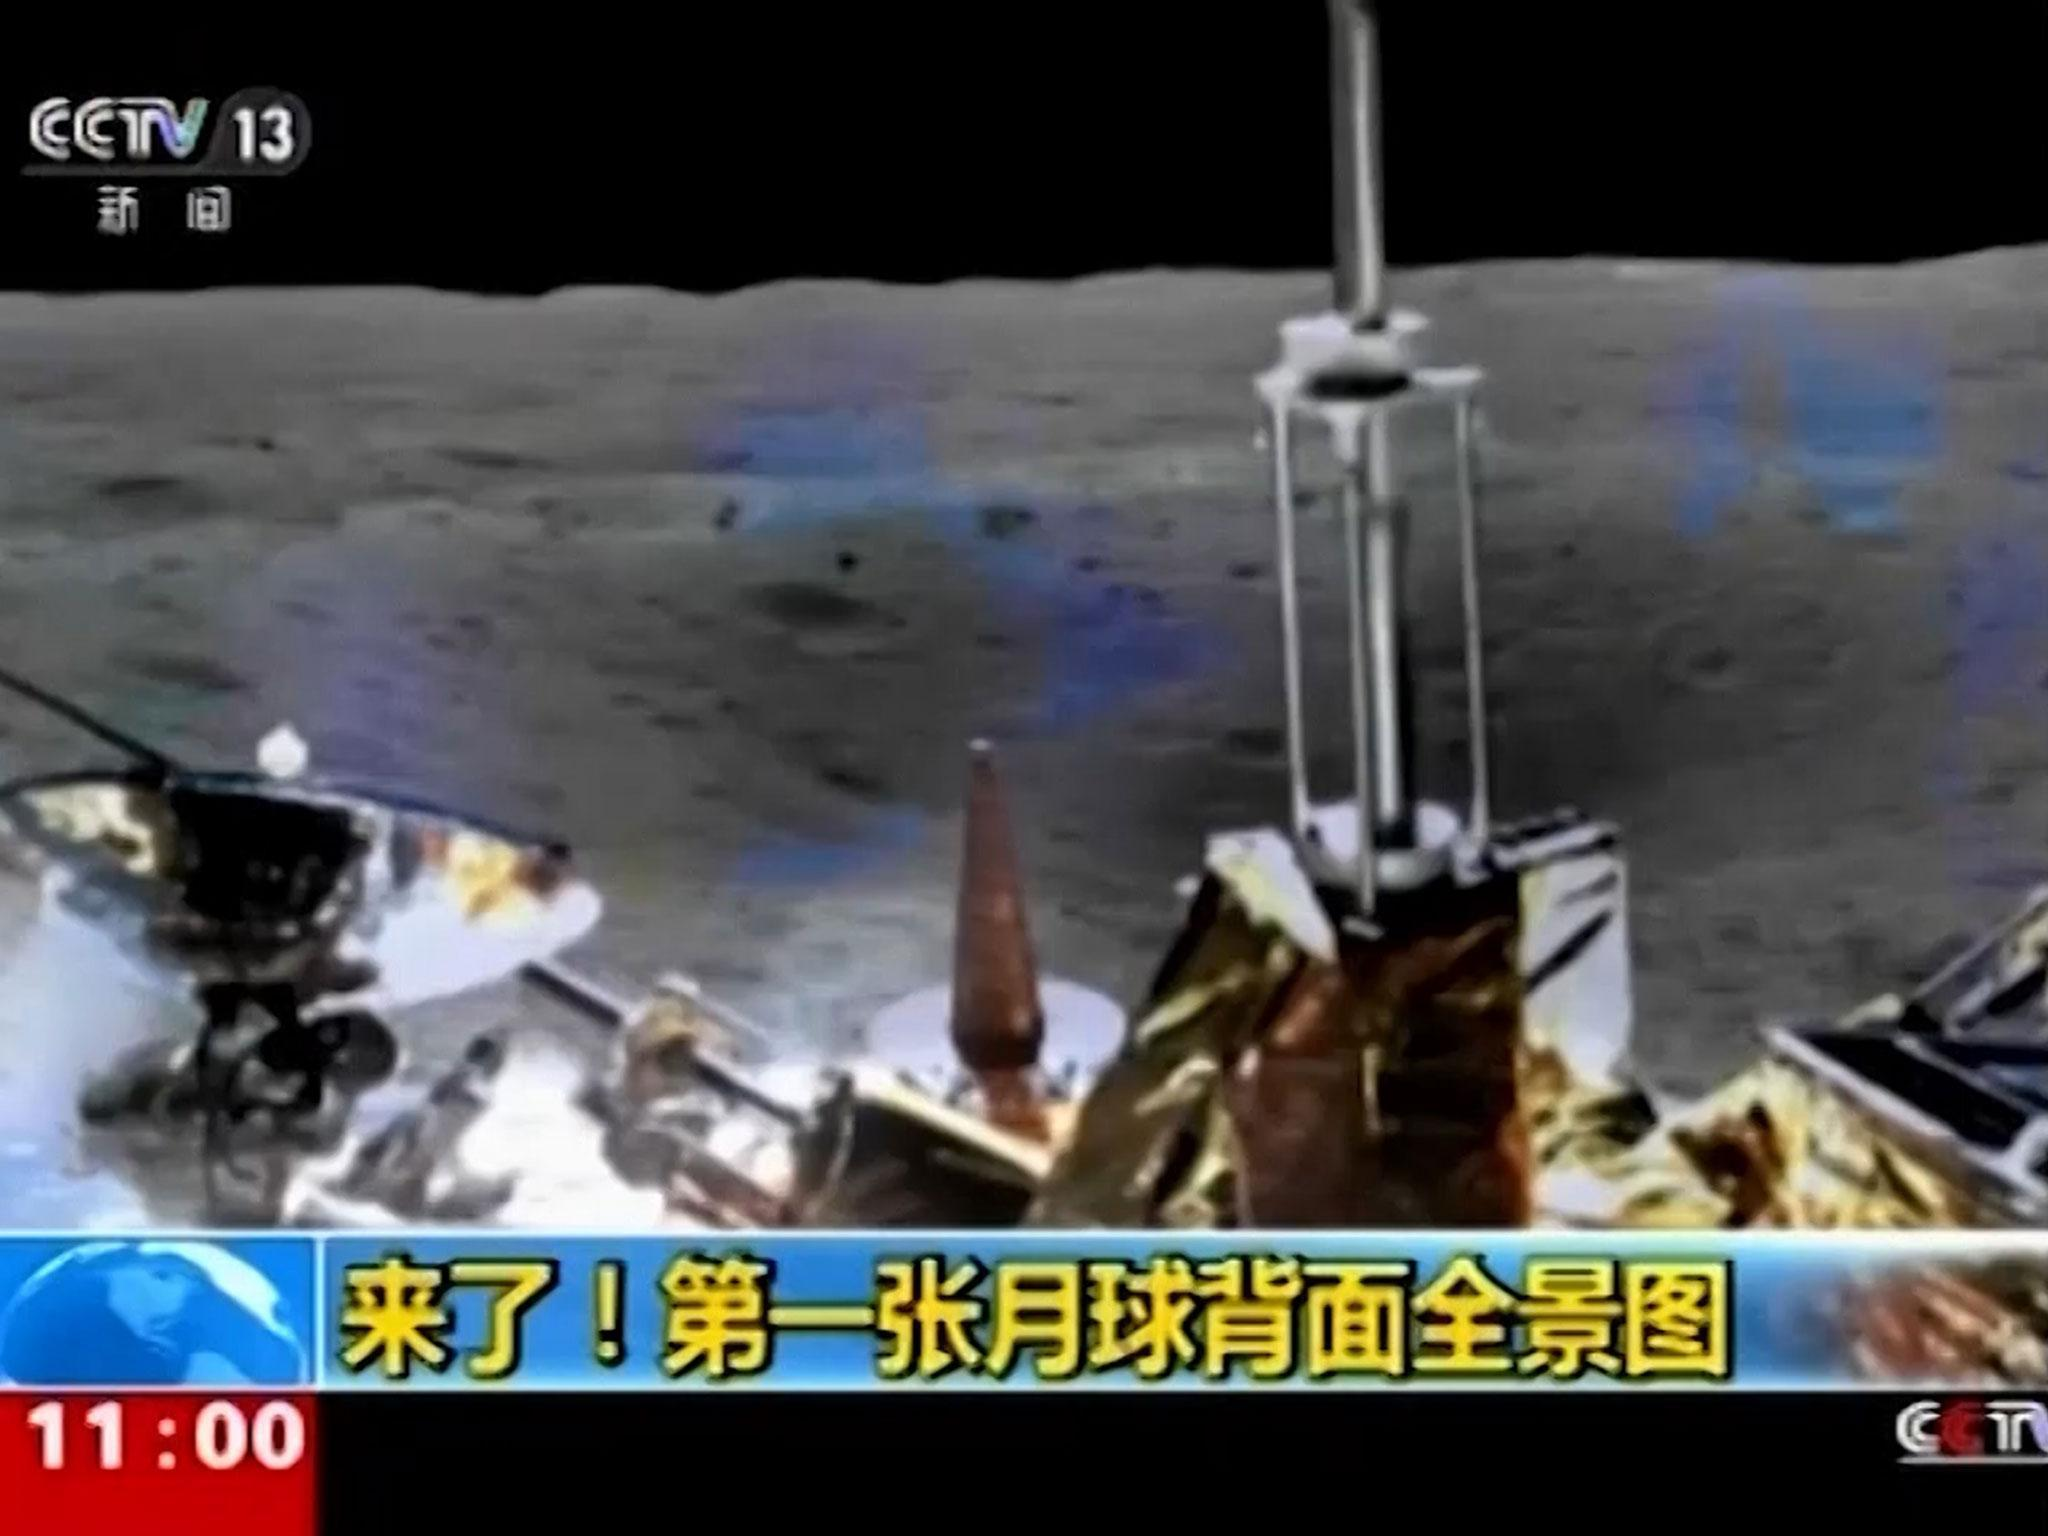 China broadcasts never-before-seen pictures of the far side of the Moon